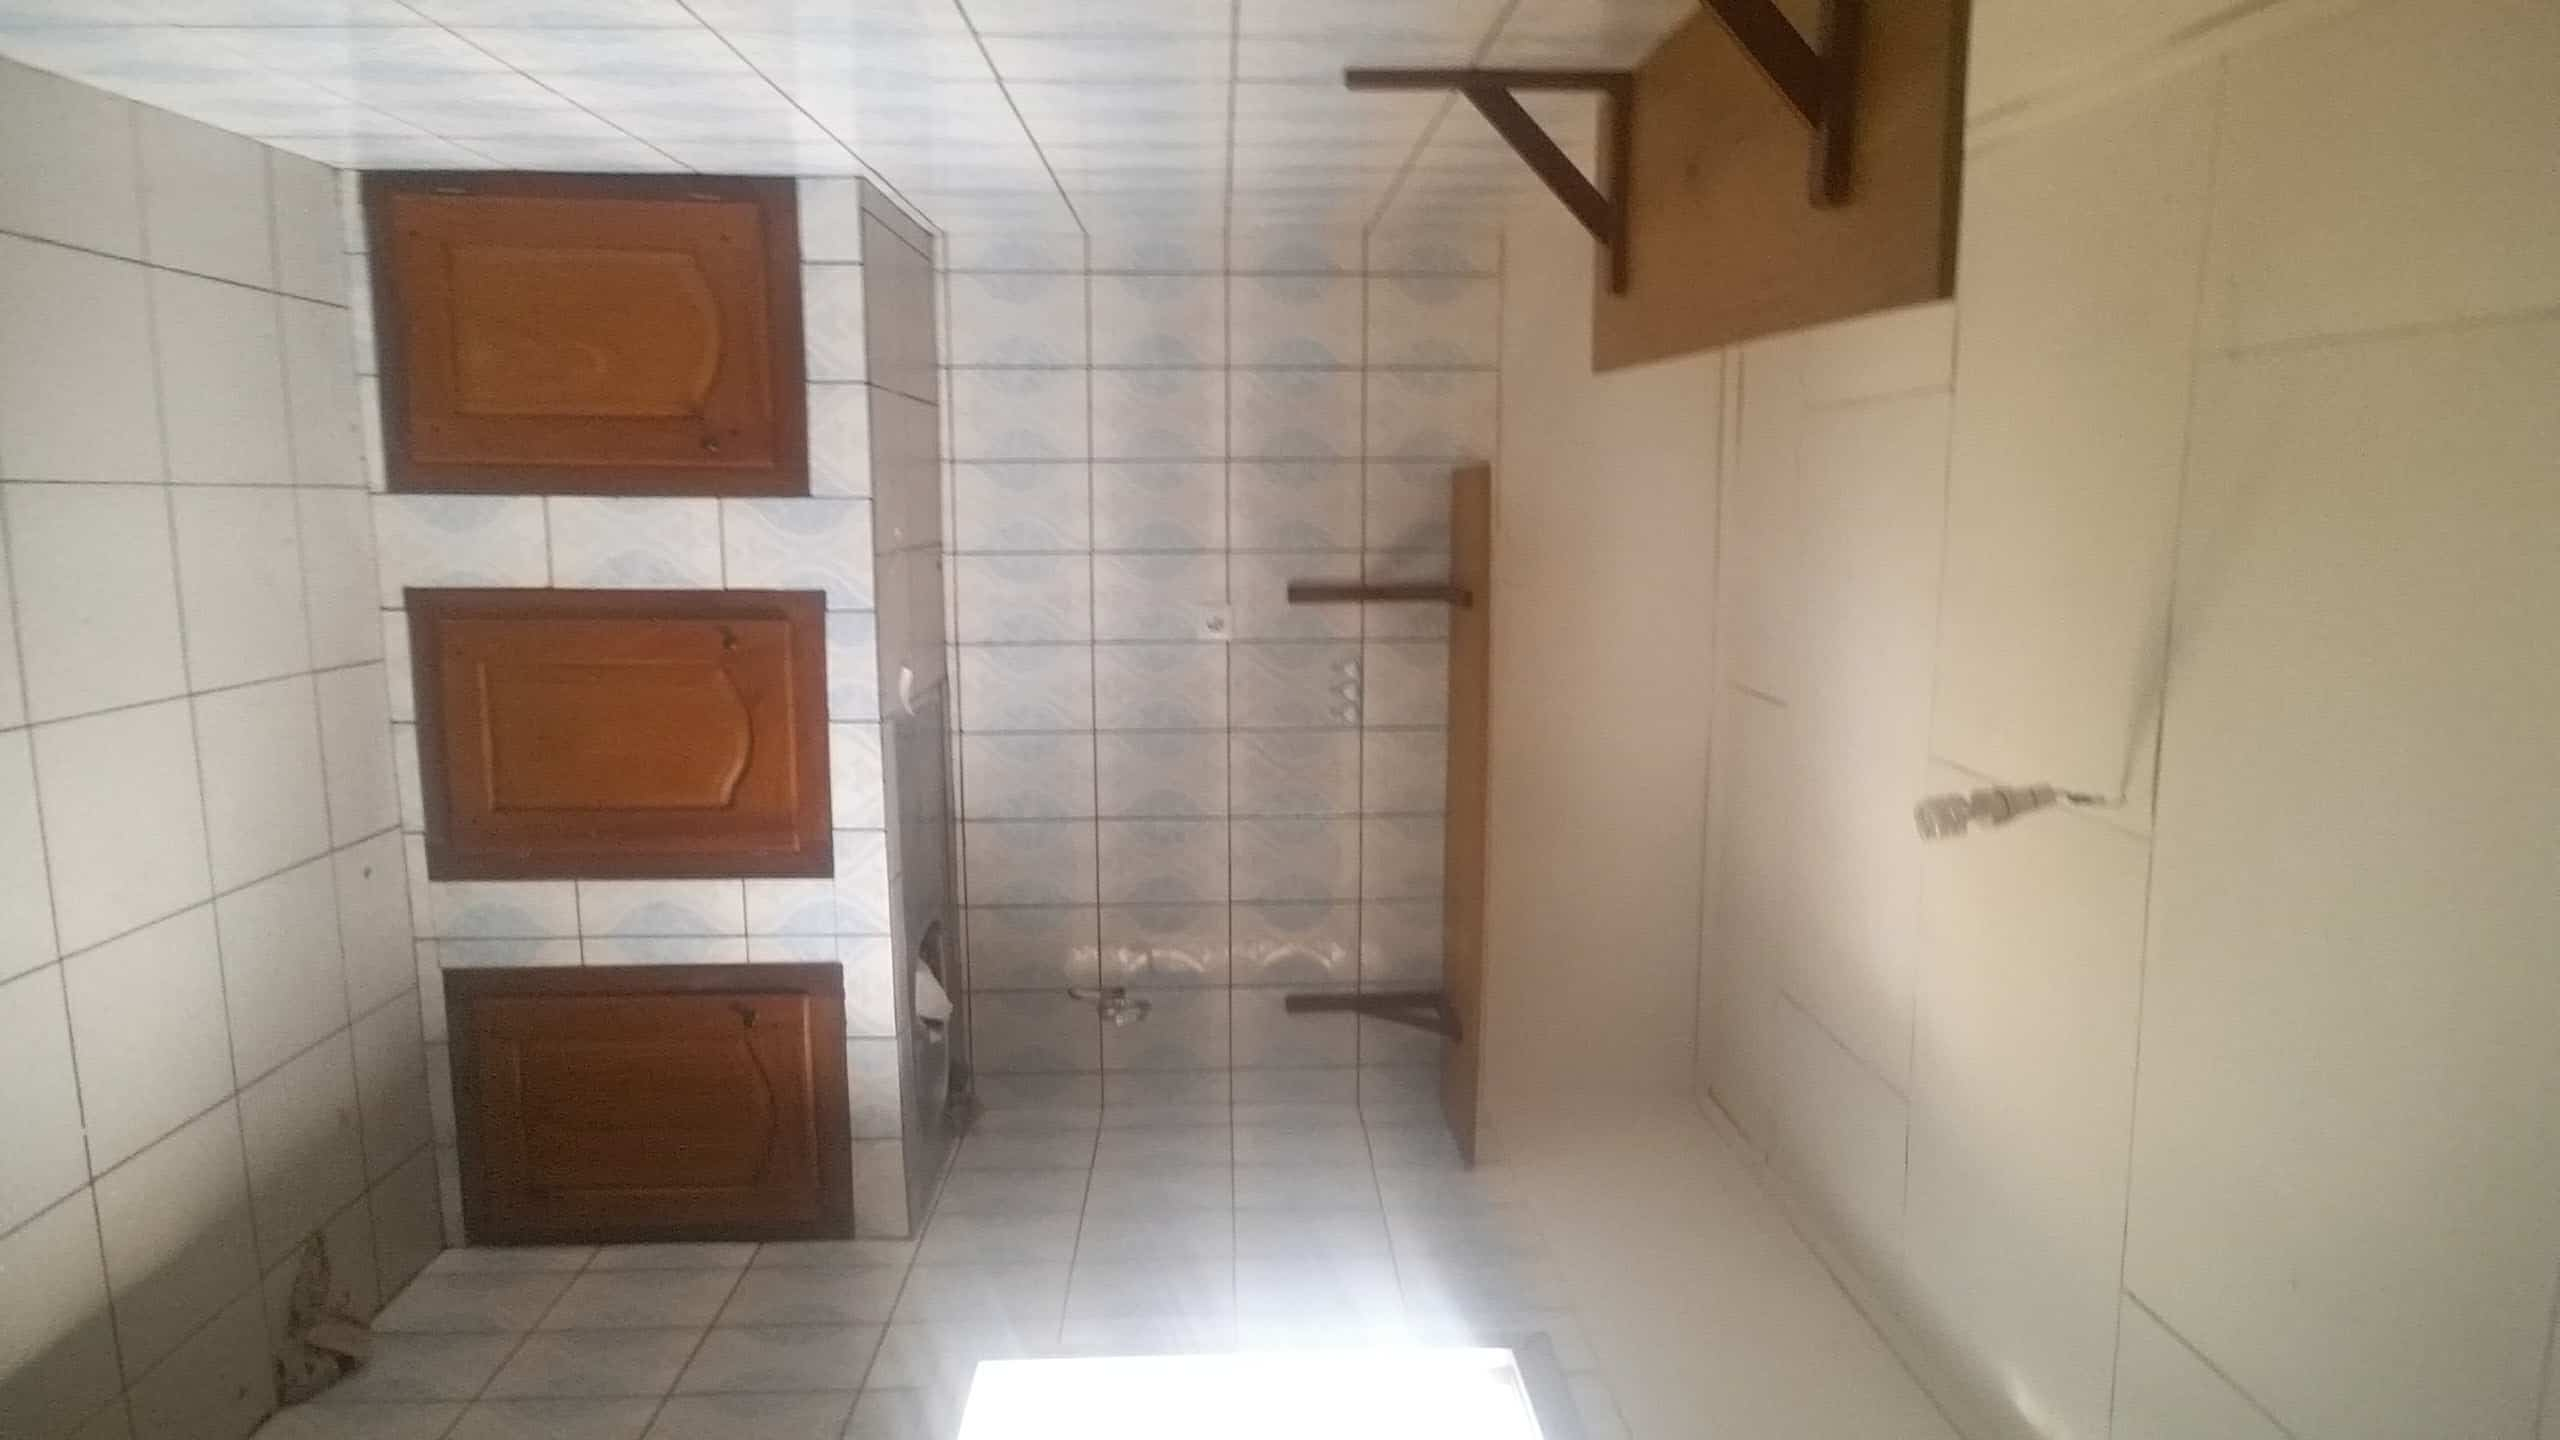 Apartment to rent - Yaoundé, Mfandena, Titigarage - 1 living room(s), 3 bedroom(s), 2 bathroom(s) - 180 000 FCFA / month